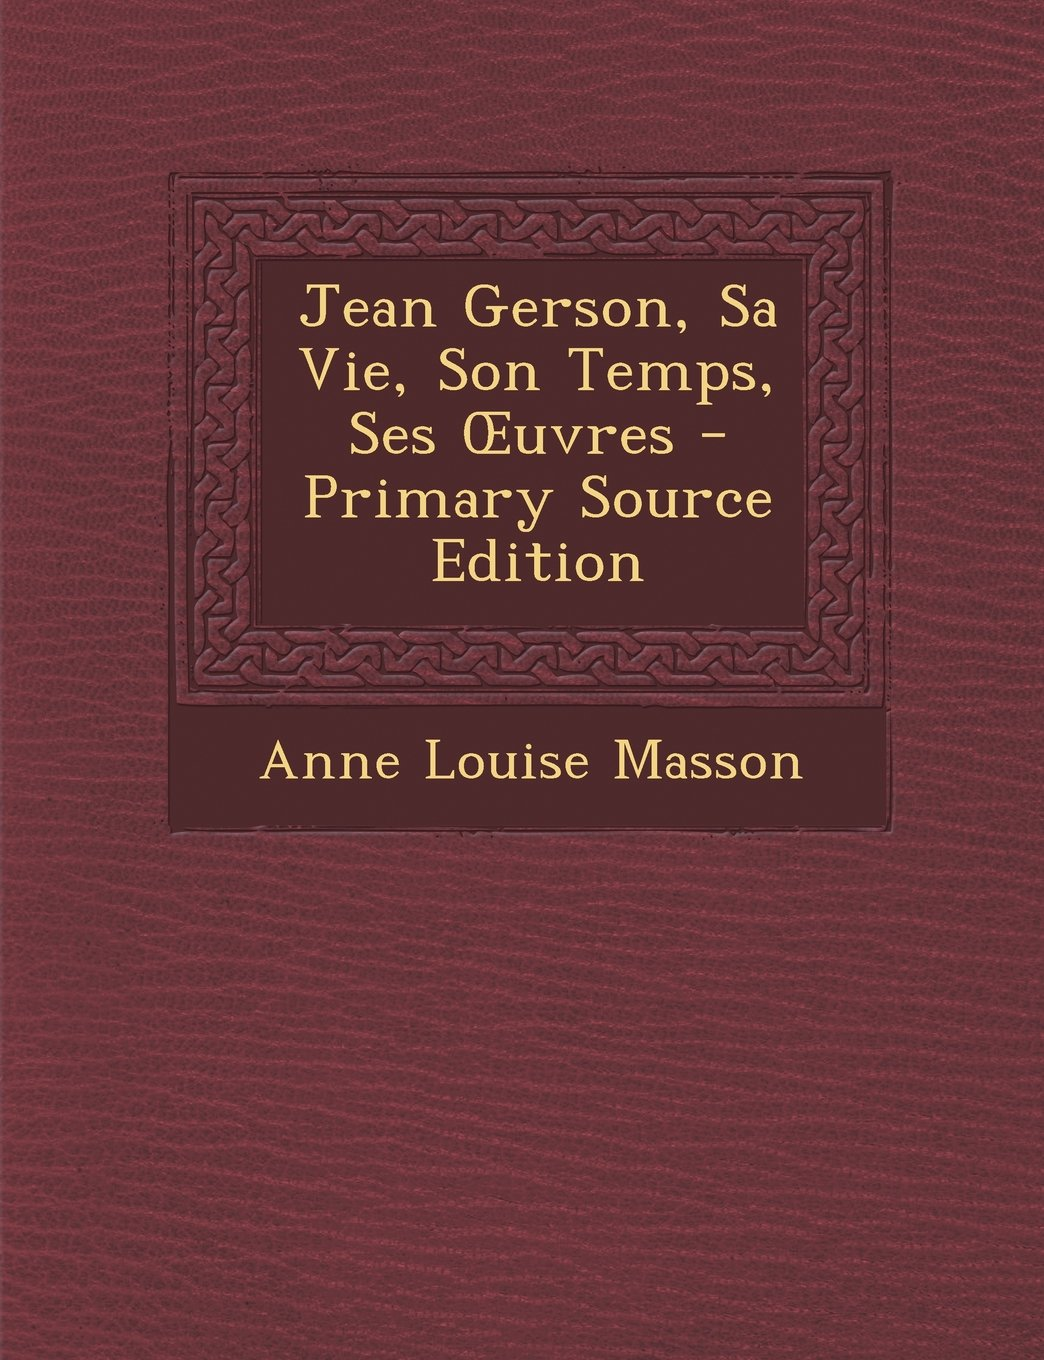 Read Online Jean Gerson, Sa Vie, Son Temps, Ses Uvres - Primary Source Edition (French Edition) pdf